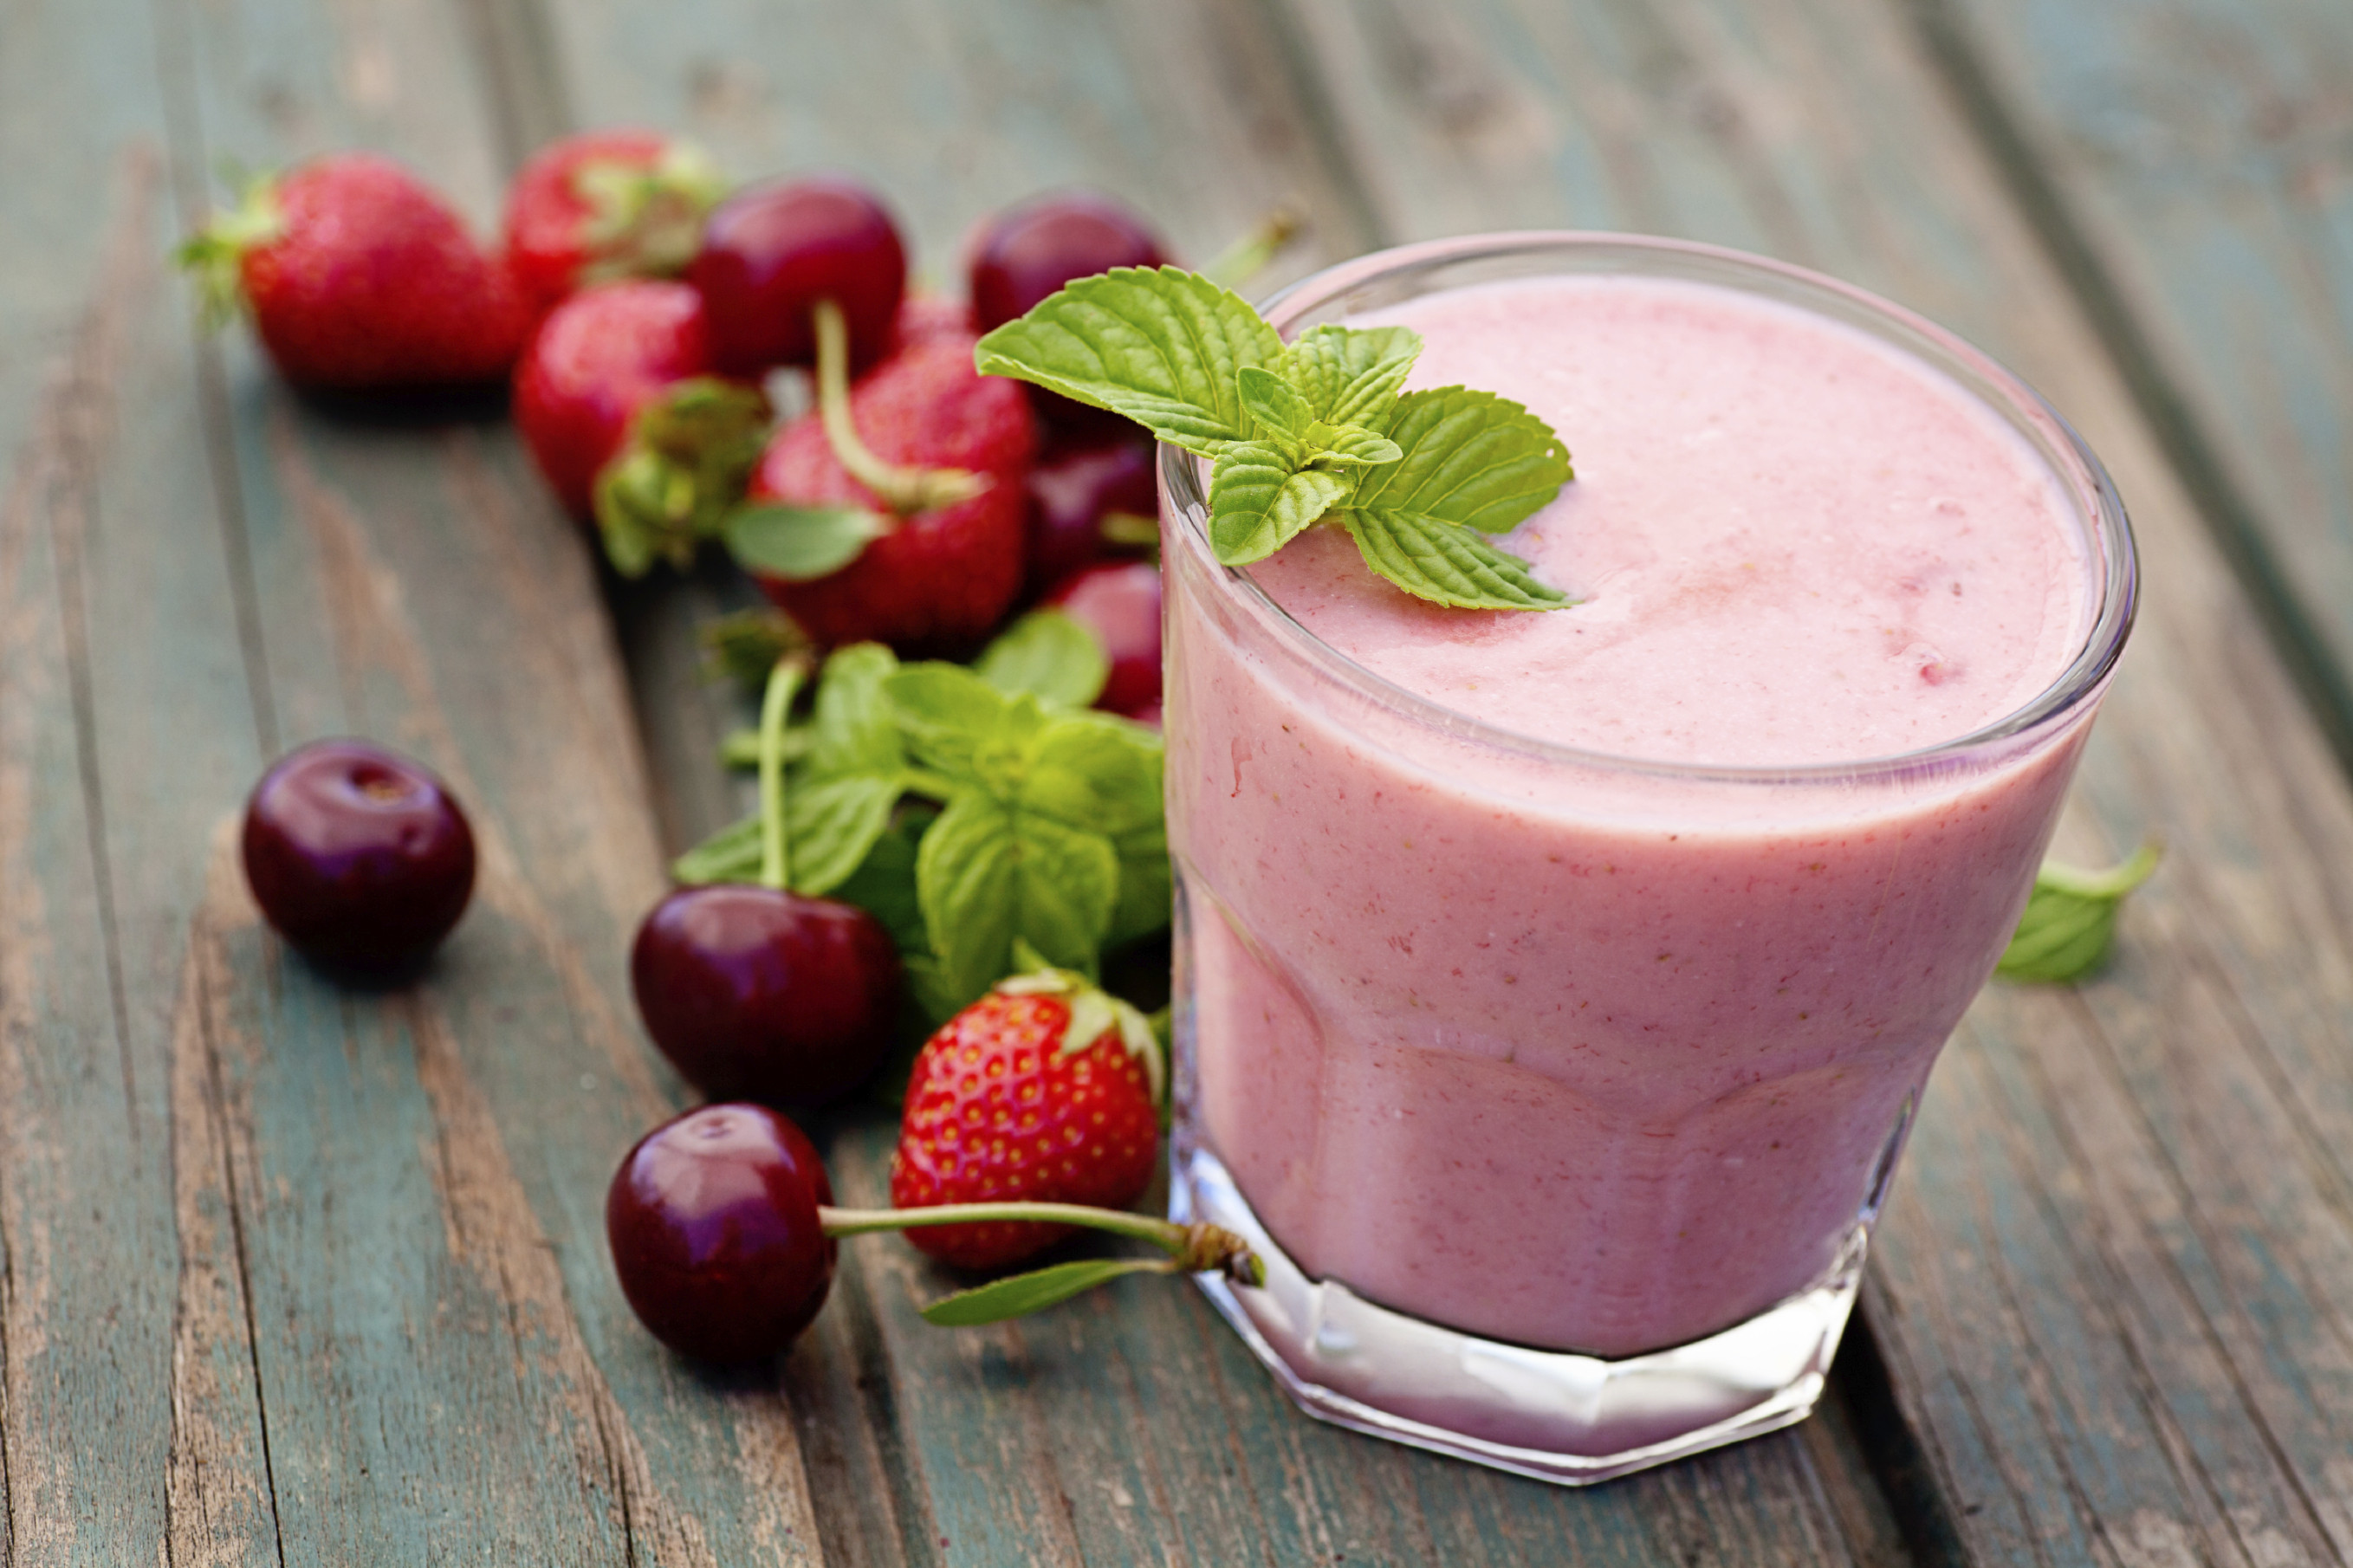 Healthy Frozen Smoothies 20 Ideas for the Best Frozen Fruit for Smoothies